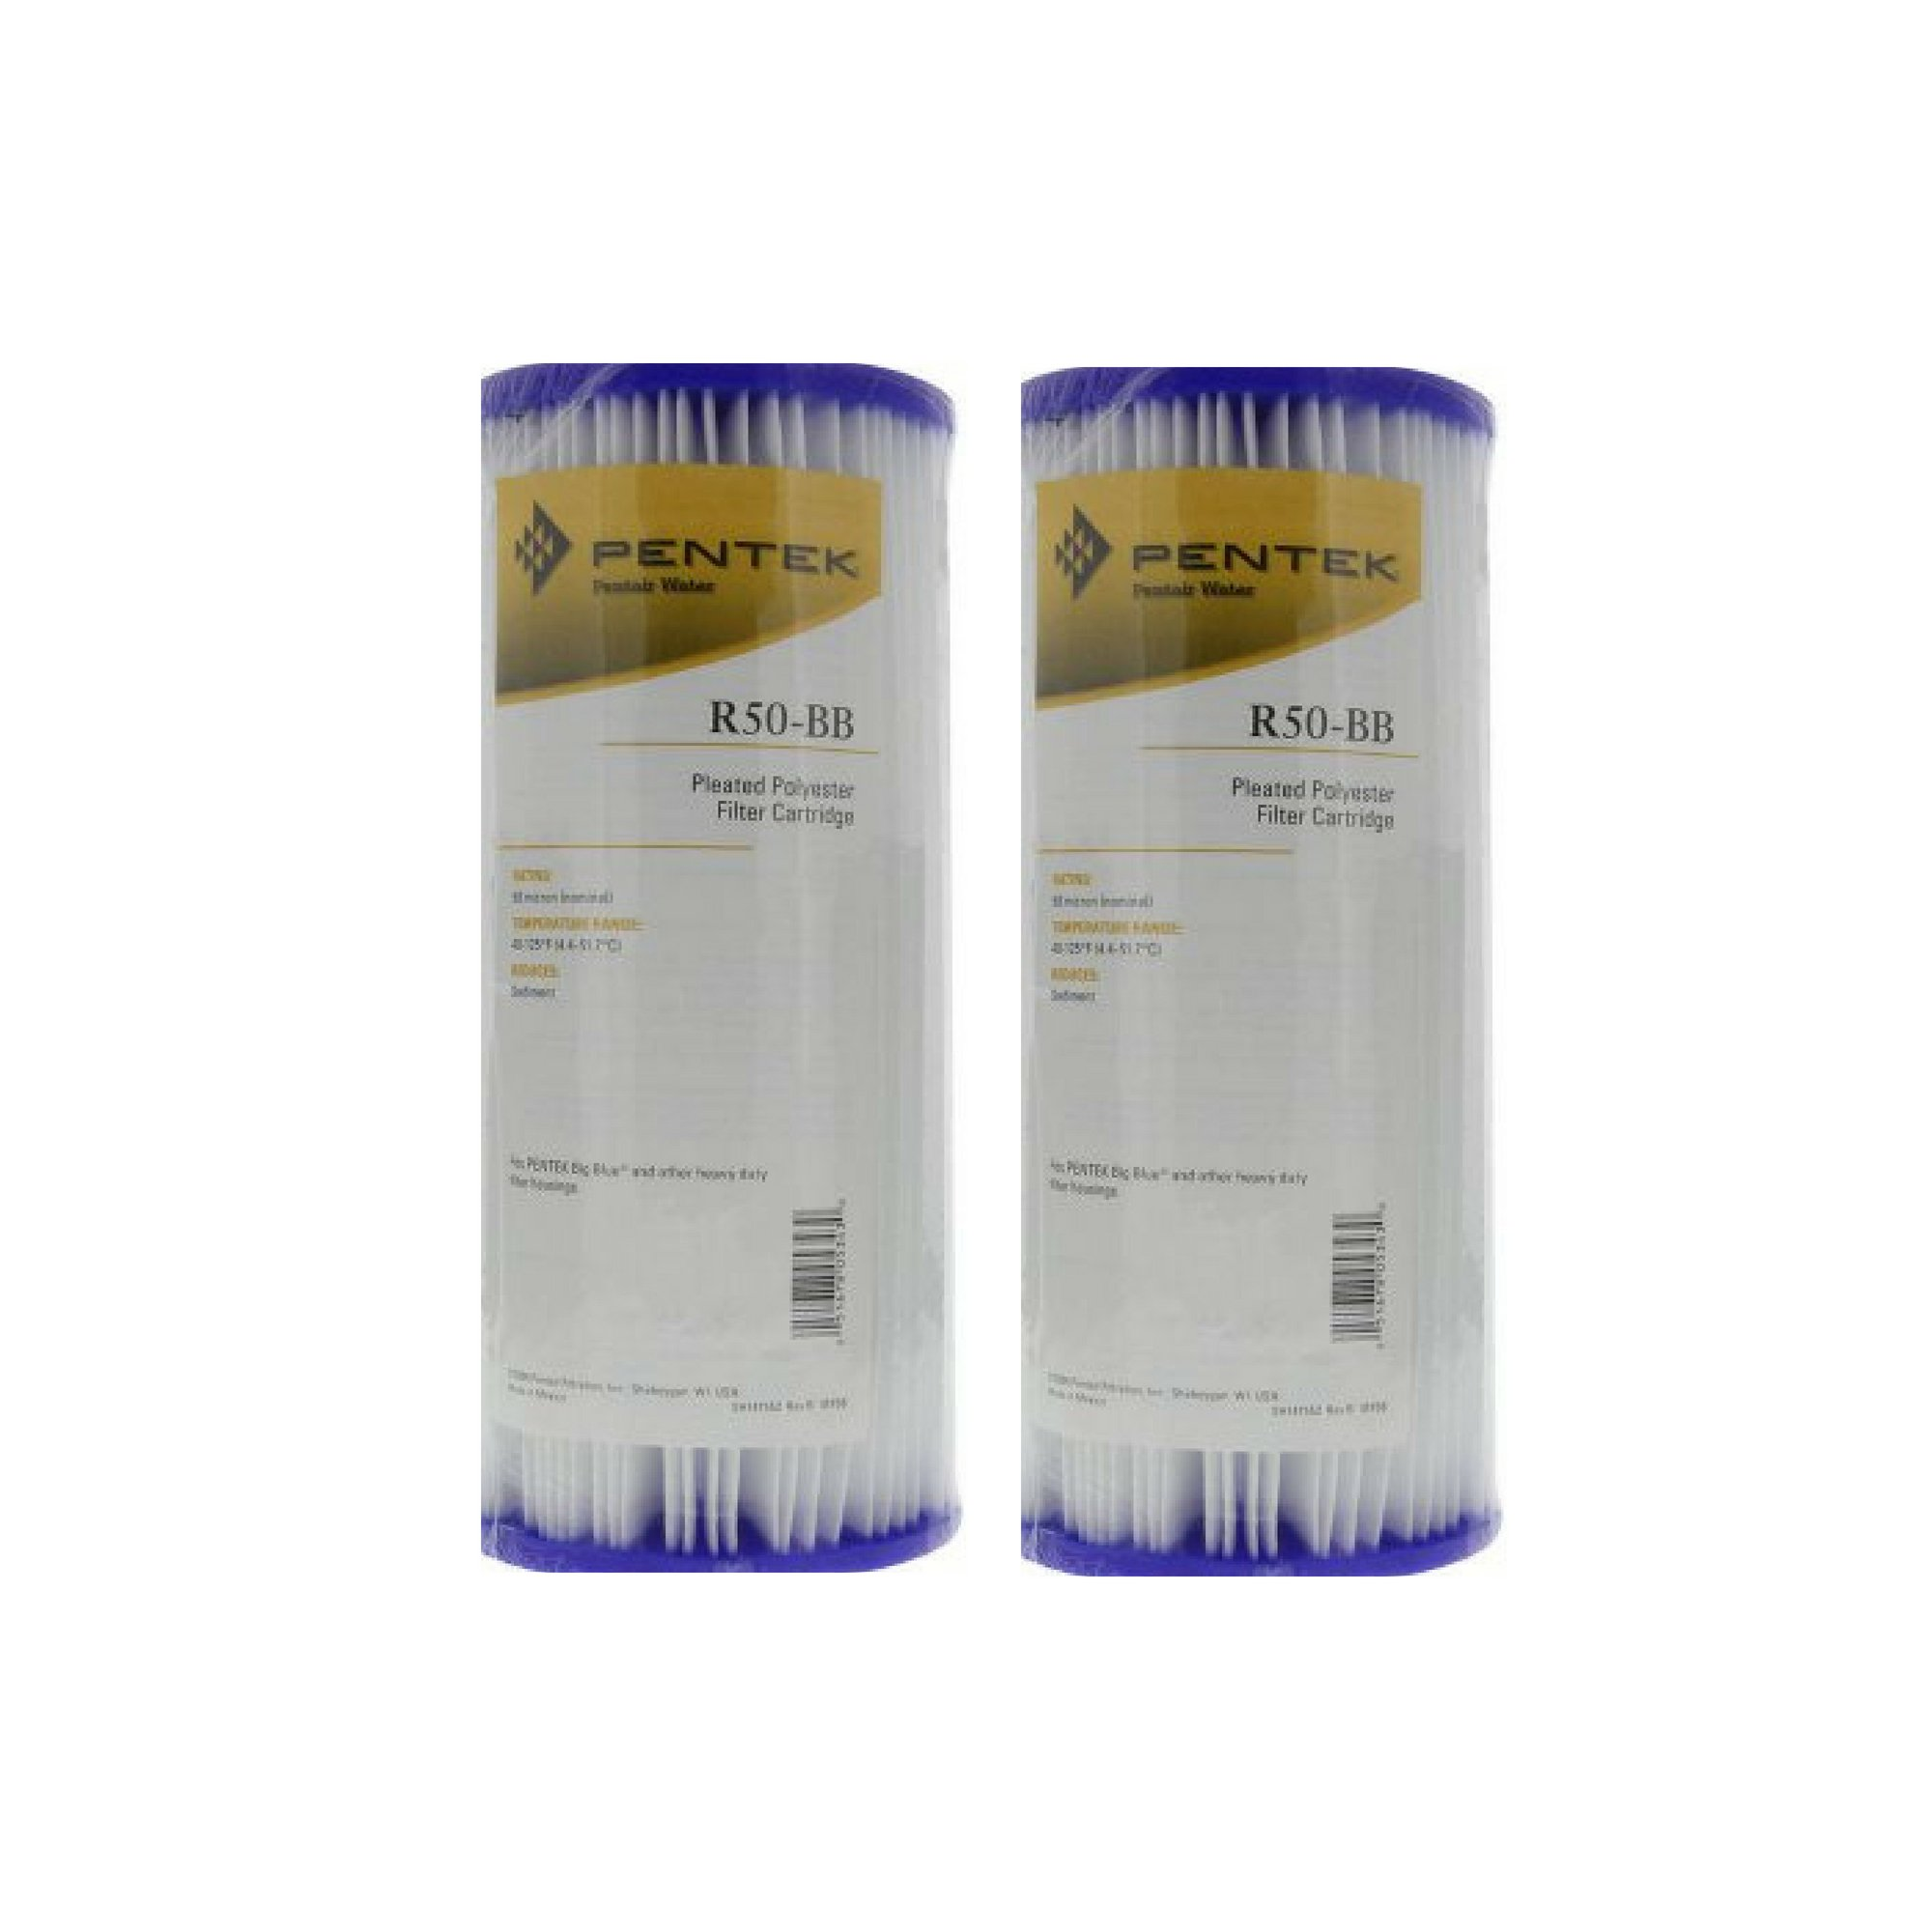 Pentek R50-BB Pleated Polyester Water Filters (9-3/4'' x 4-1/2'') - 2